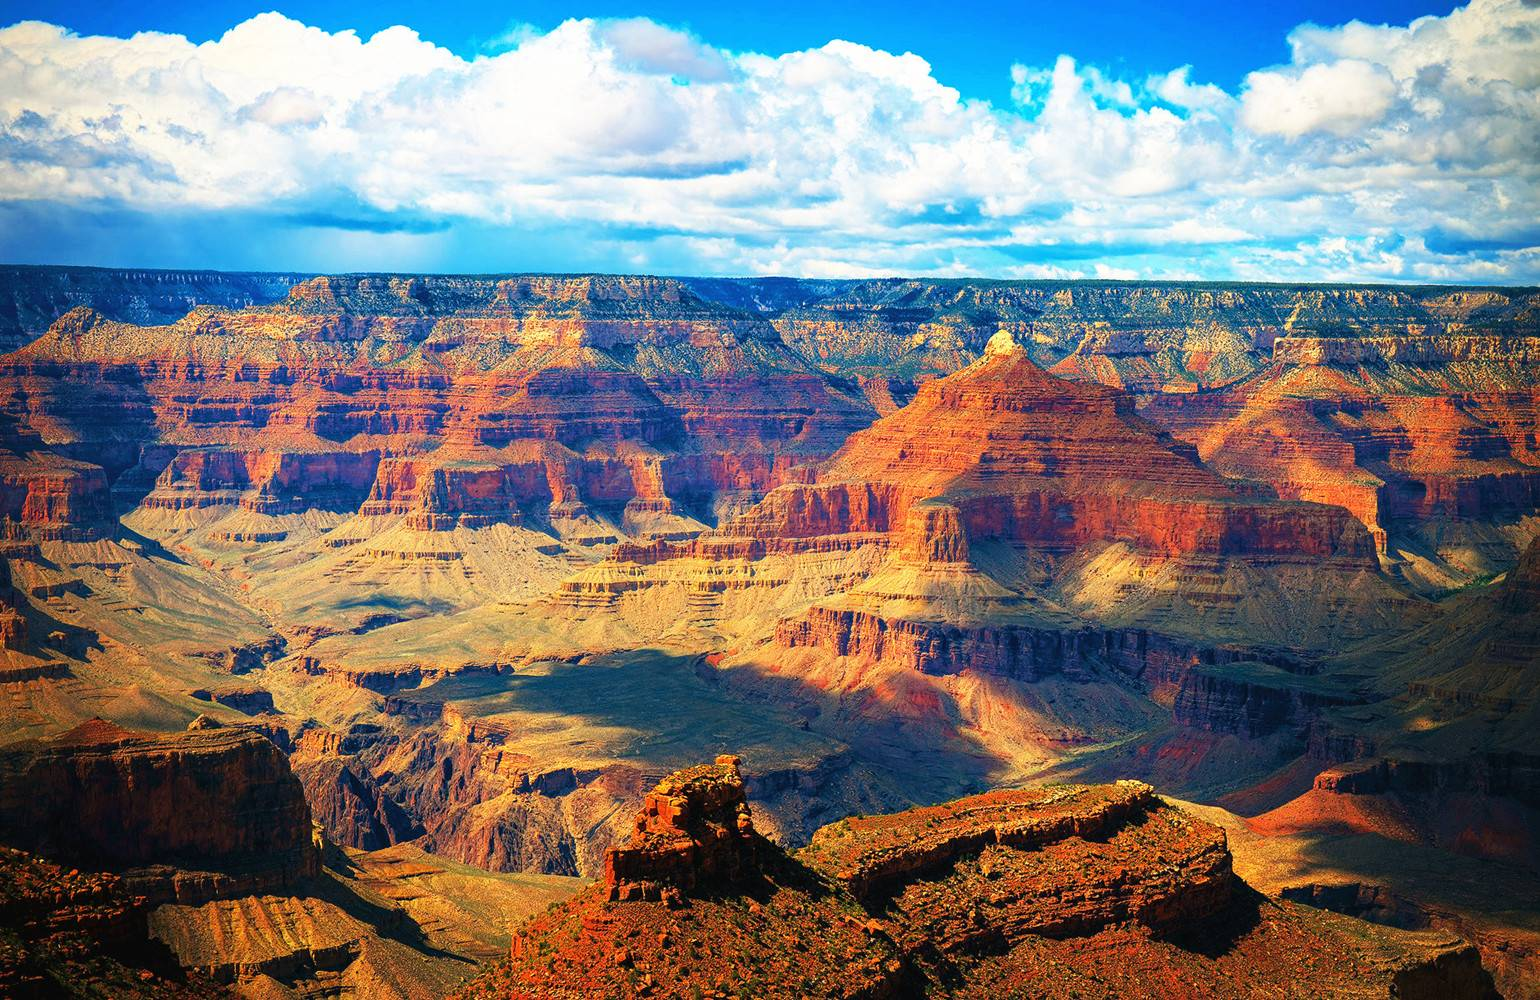 5-Day Yosemite, Grand Canyon and Antelope Canyon Tour from San Francisco